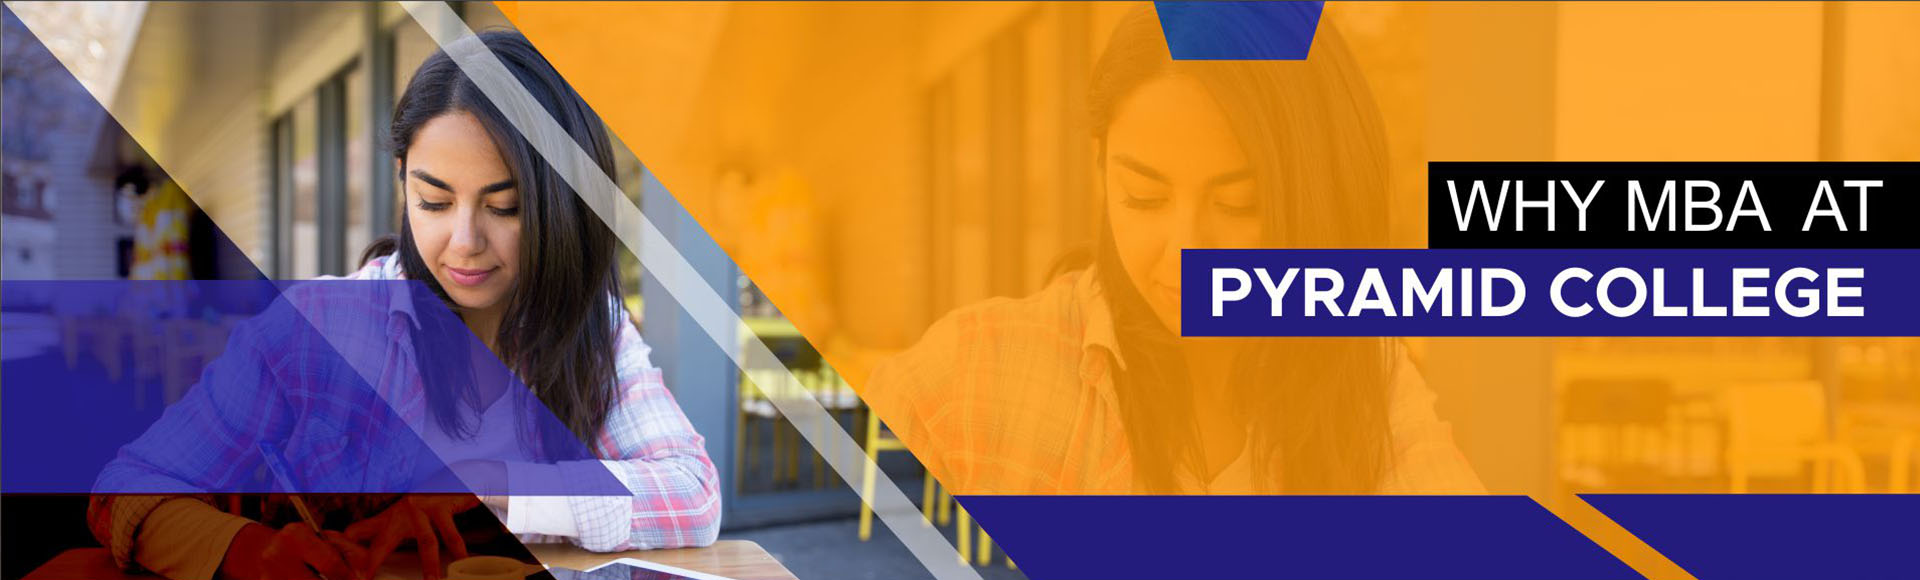 Why MBA at Pyramid College